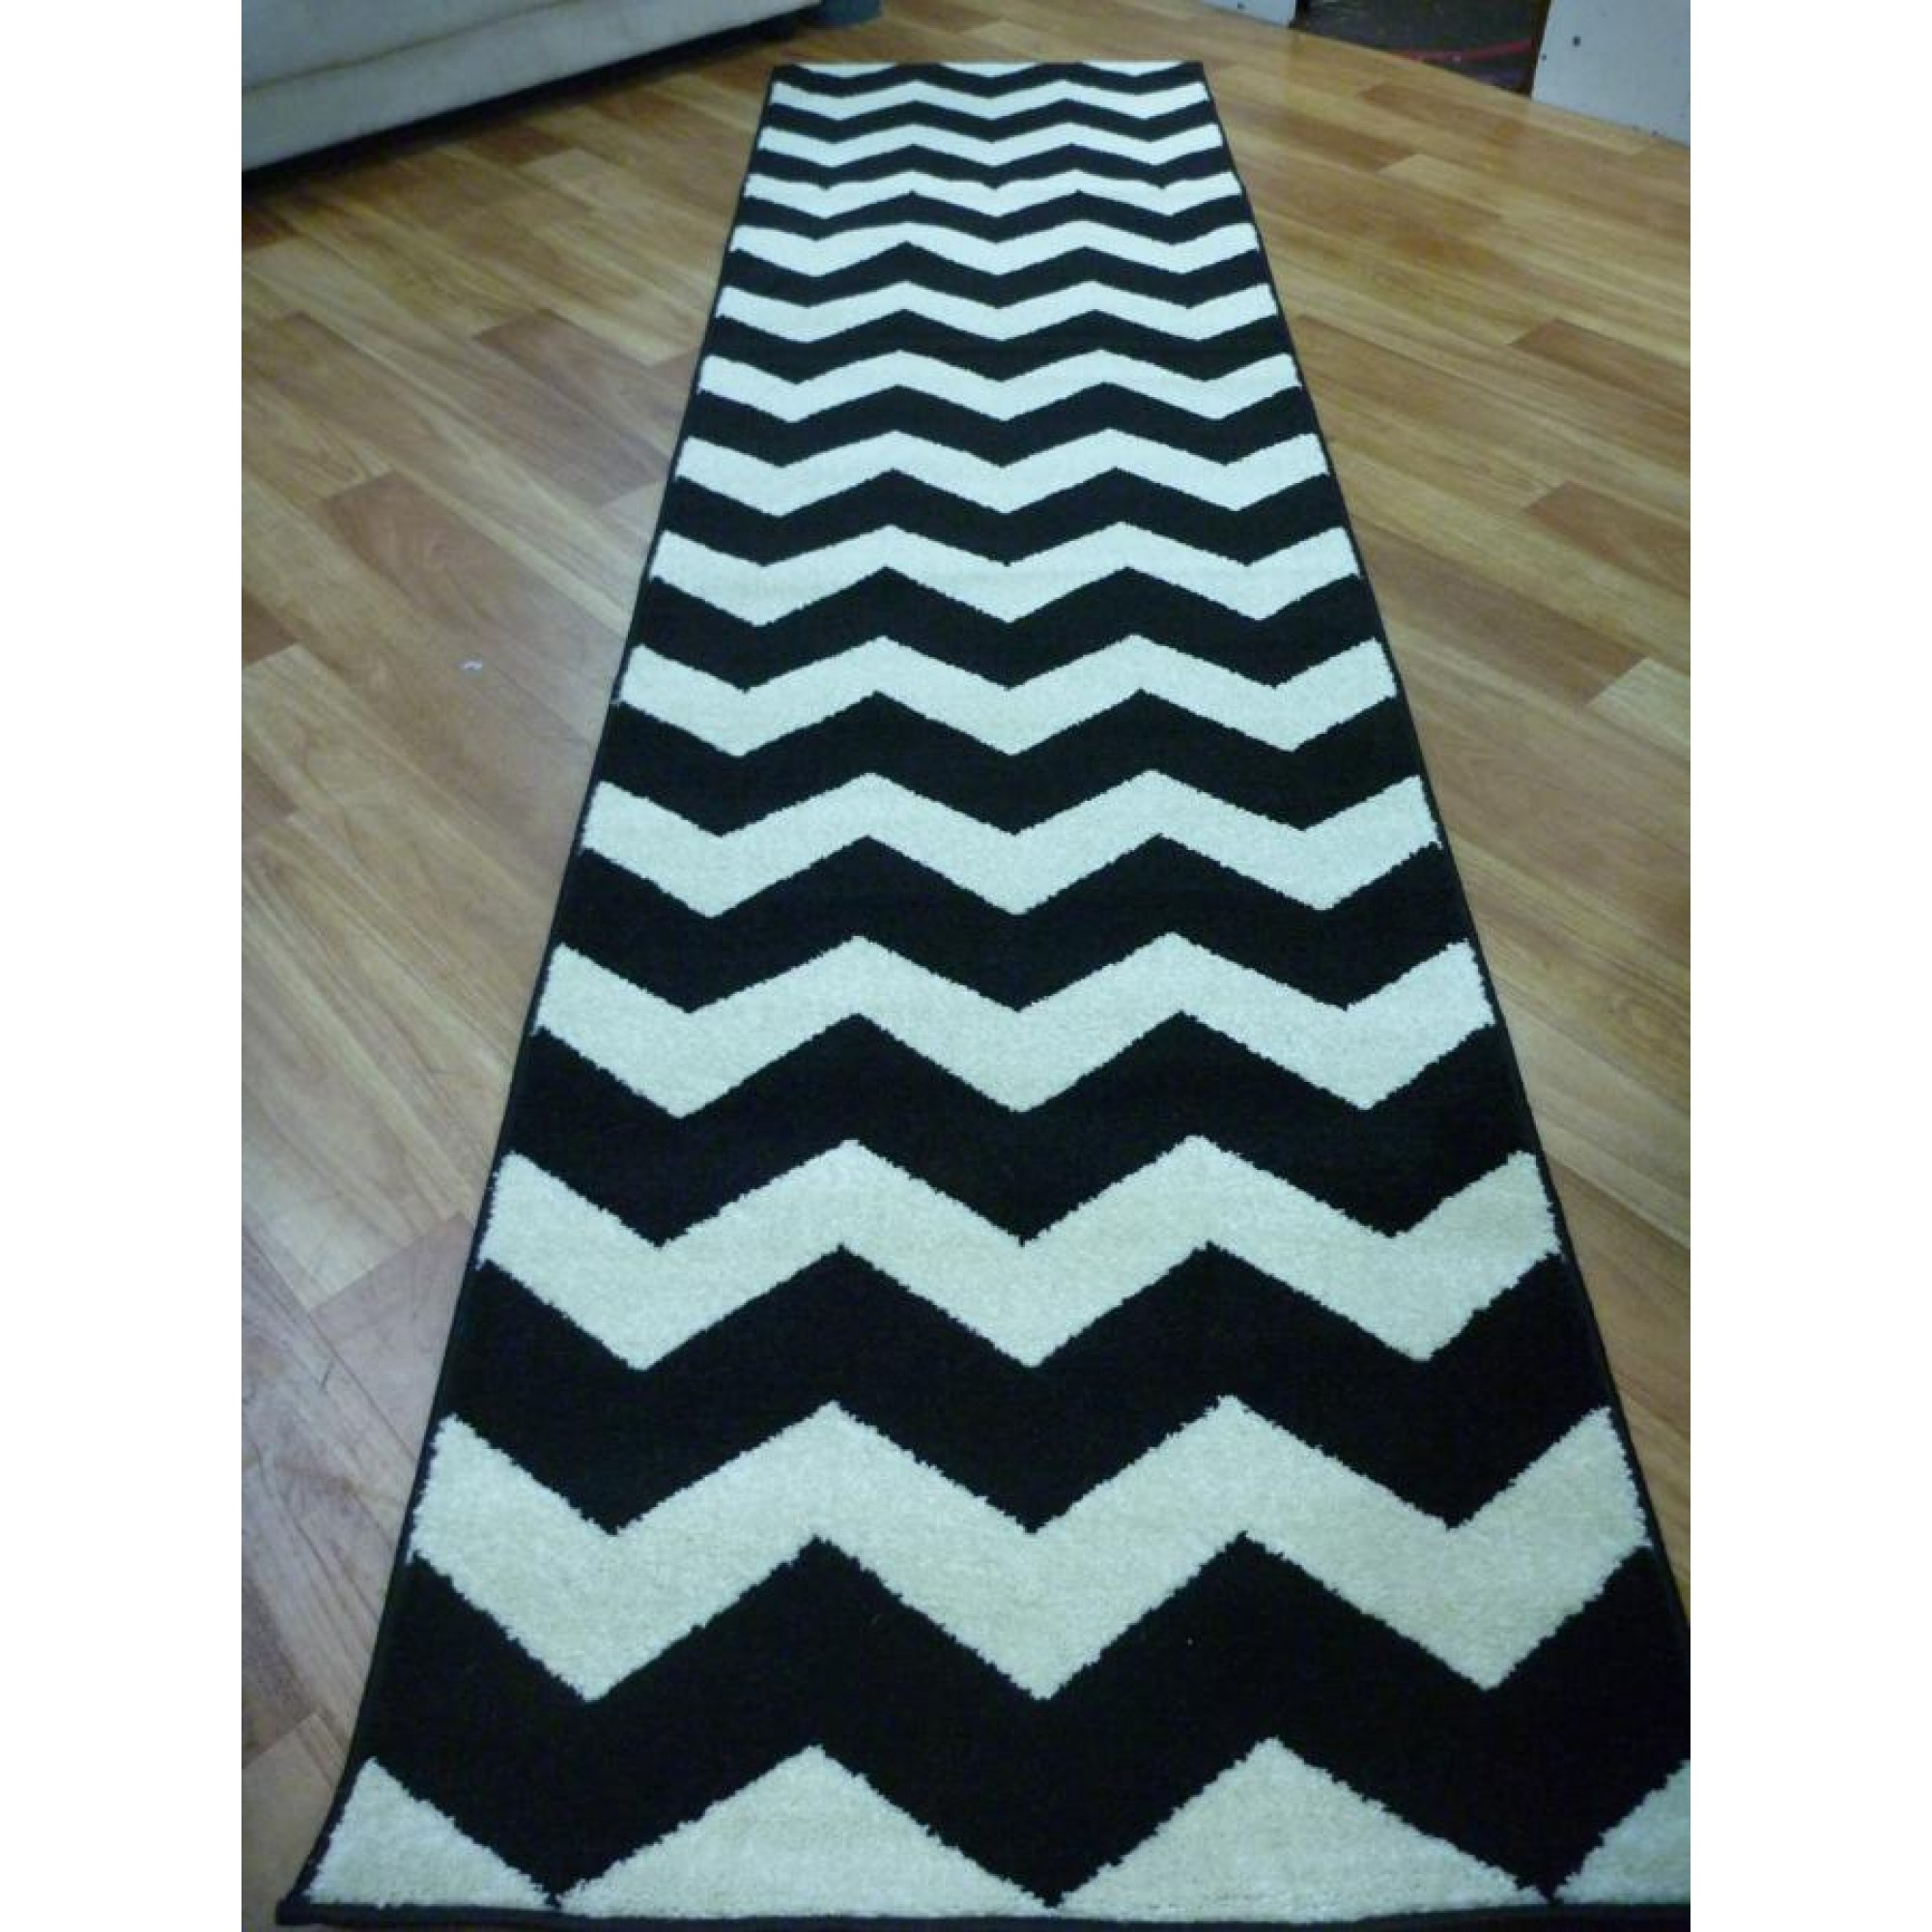 Popular Photo of Black Rug Runners For Hallways